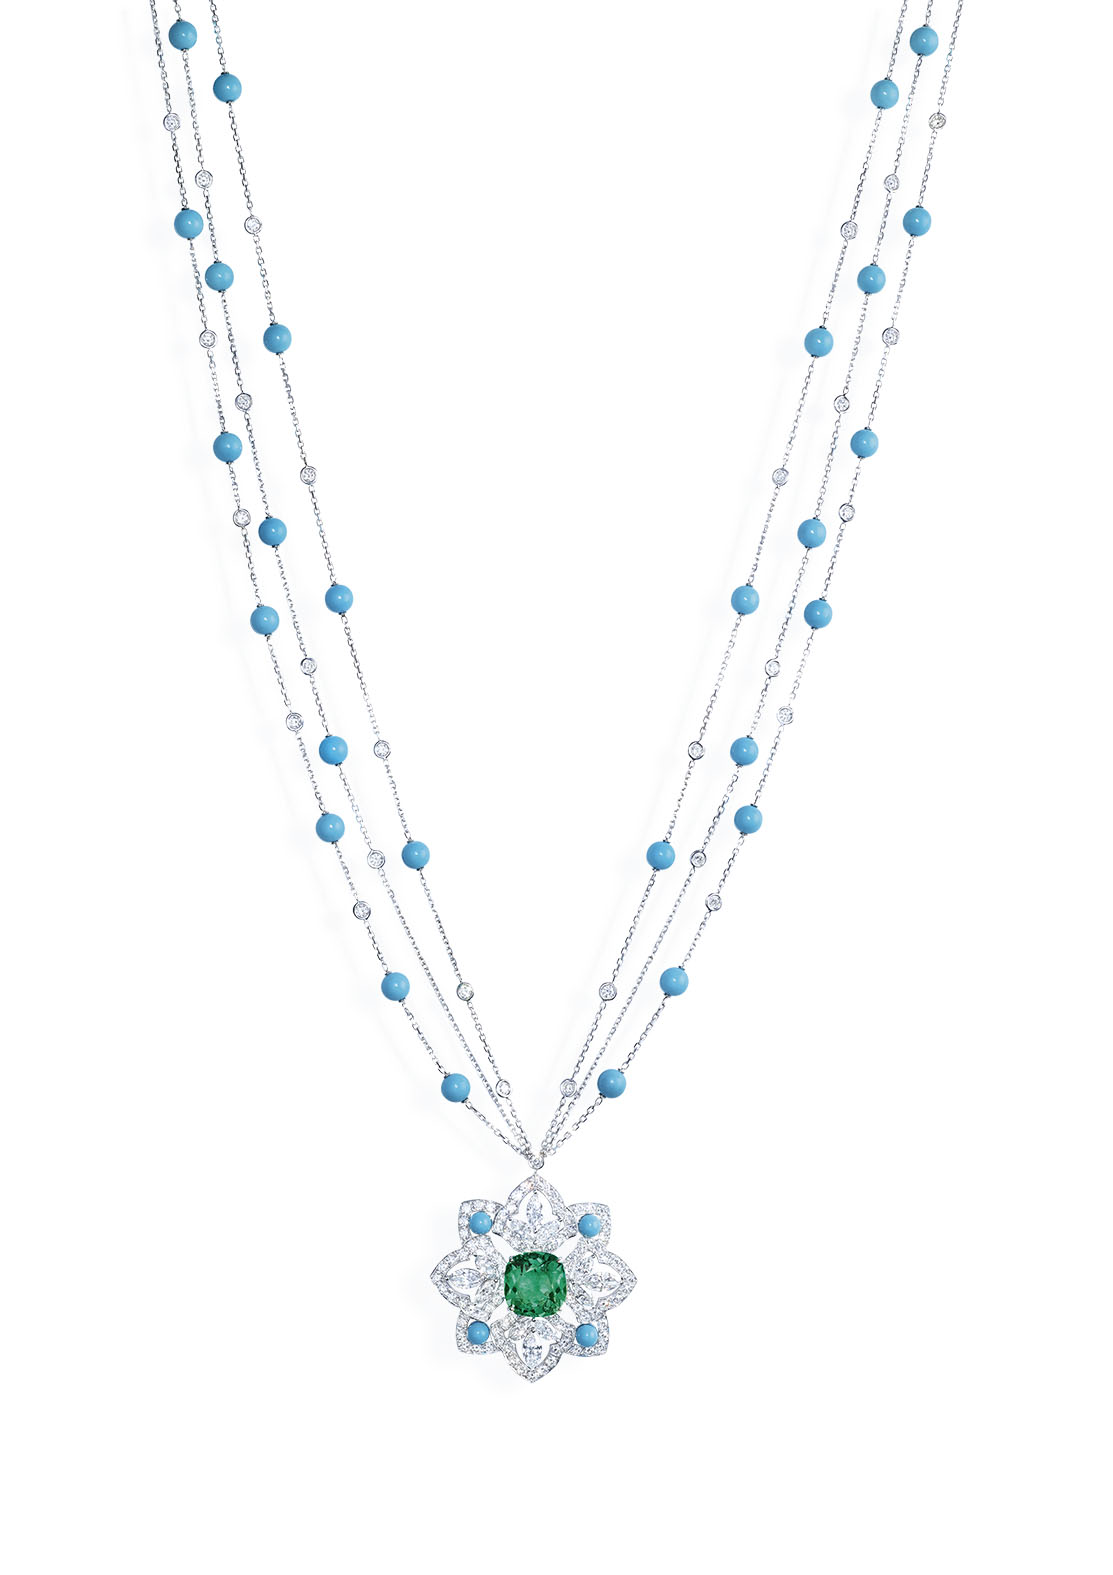 Necklace in 18K white gold set with 1 cushion-cut emerald (approx. 11.16 cts), 12 marquise-cut diamonds (approx. 4.20 cts), 32 turquoise beads (approx. 11.10 cts) and 151 brilliant-cut diamonds (approx. 9.86 cts).